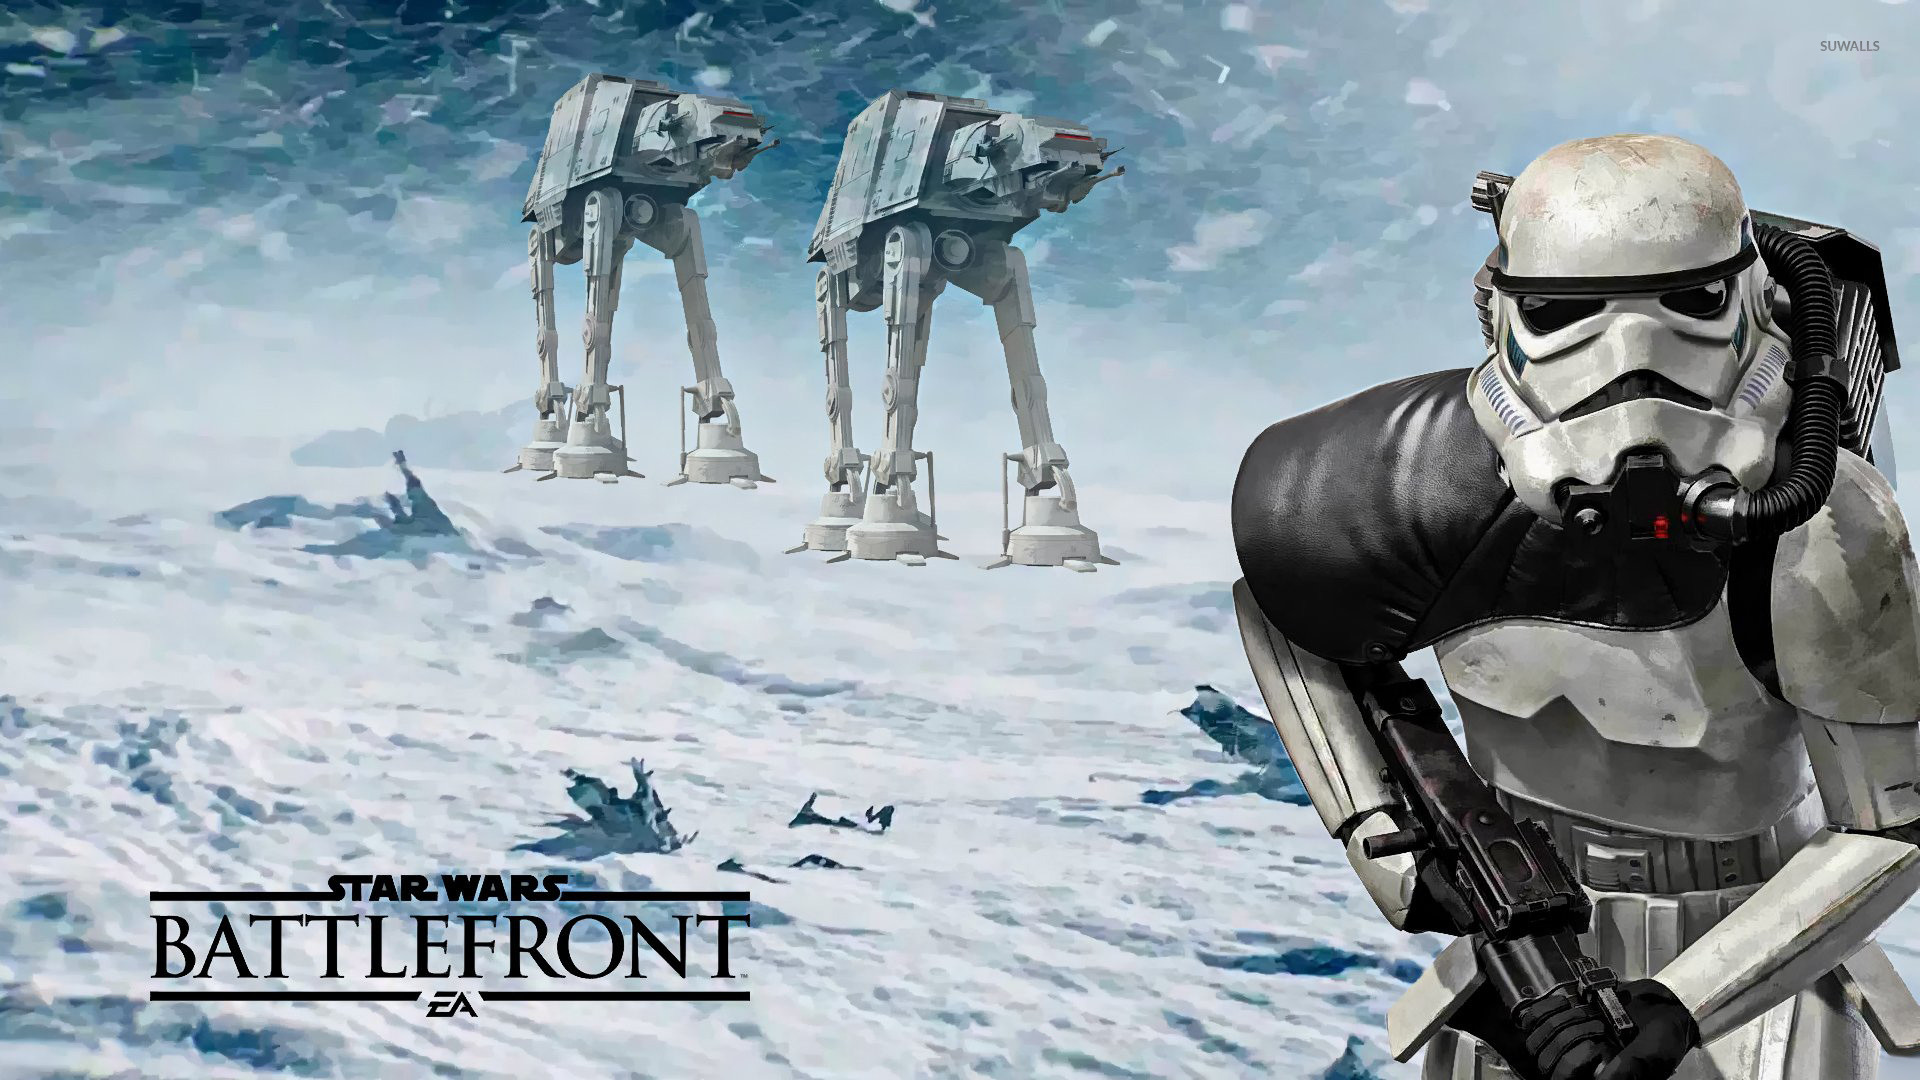 1920x1080 Stormtrooper and AT-ATs in Star Wars Battlefront wallpaper